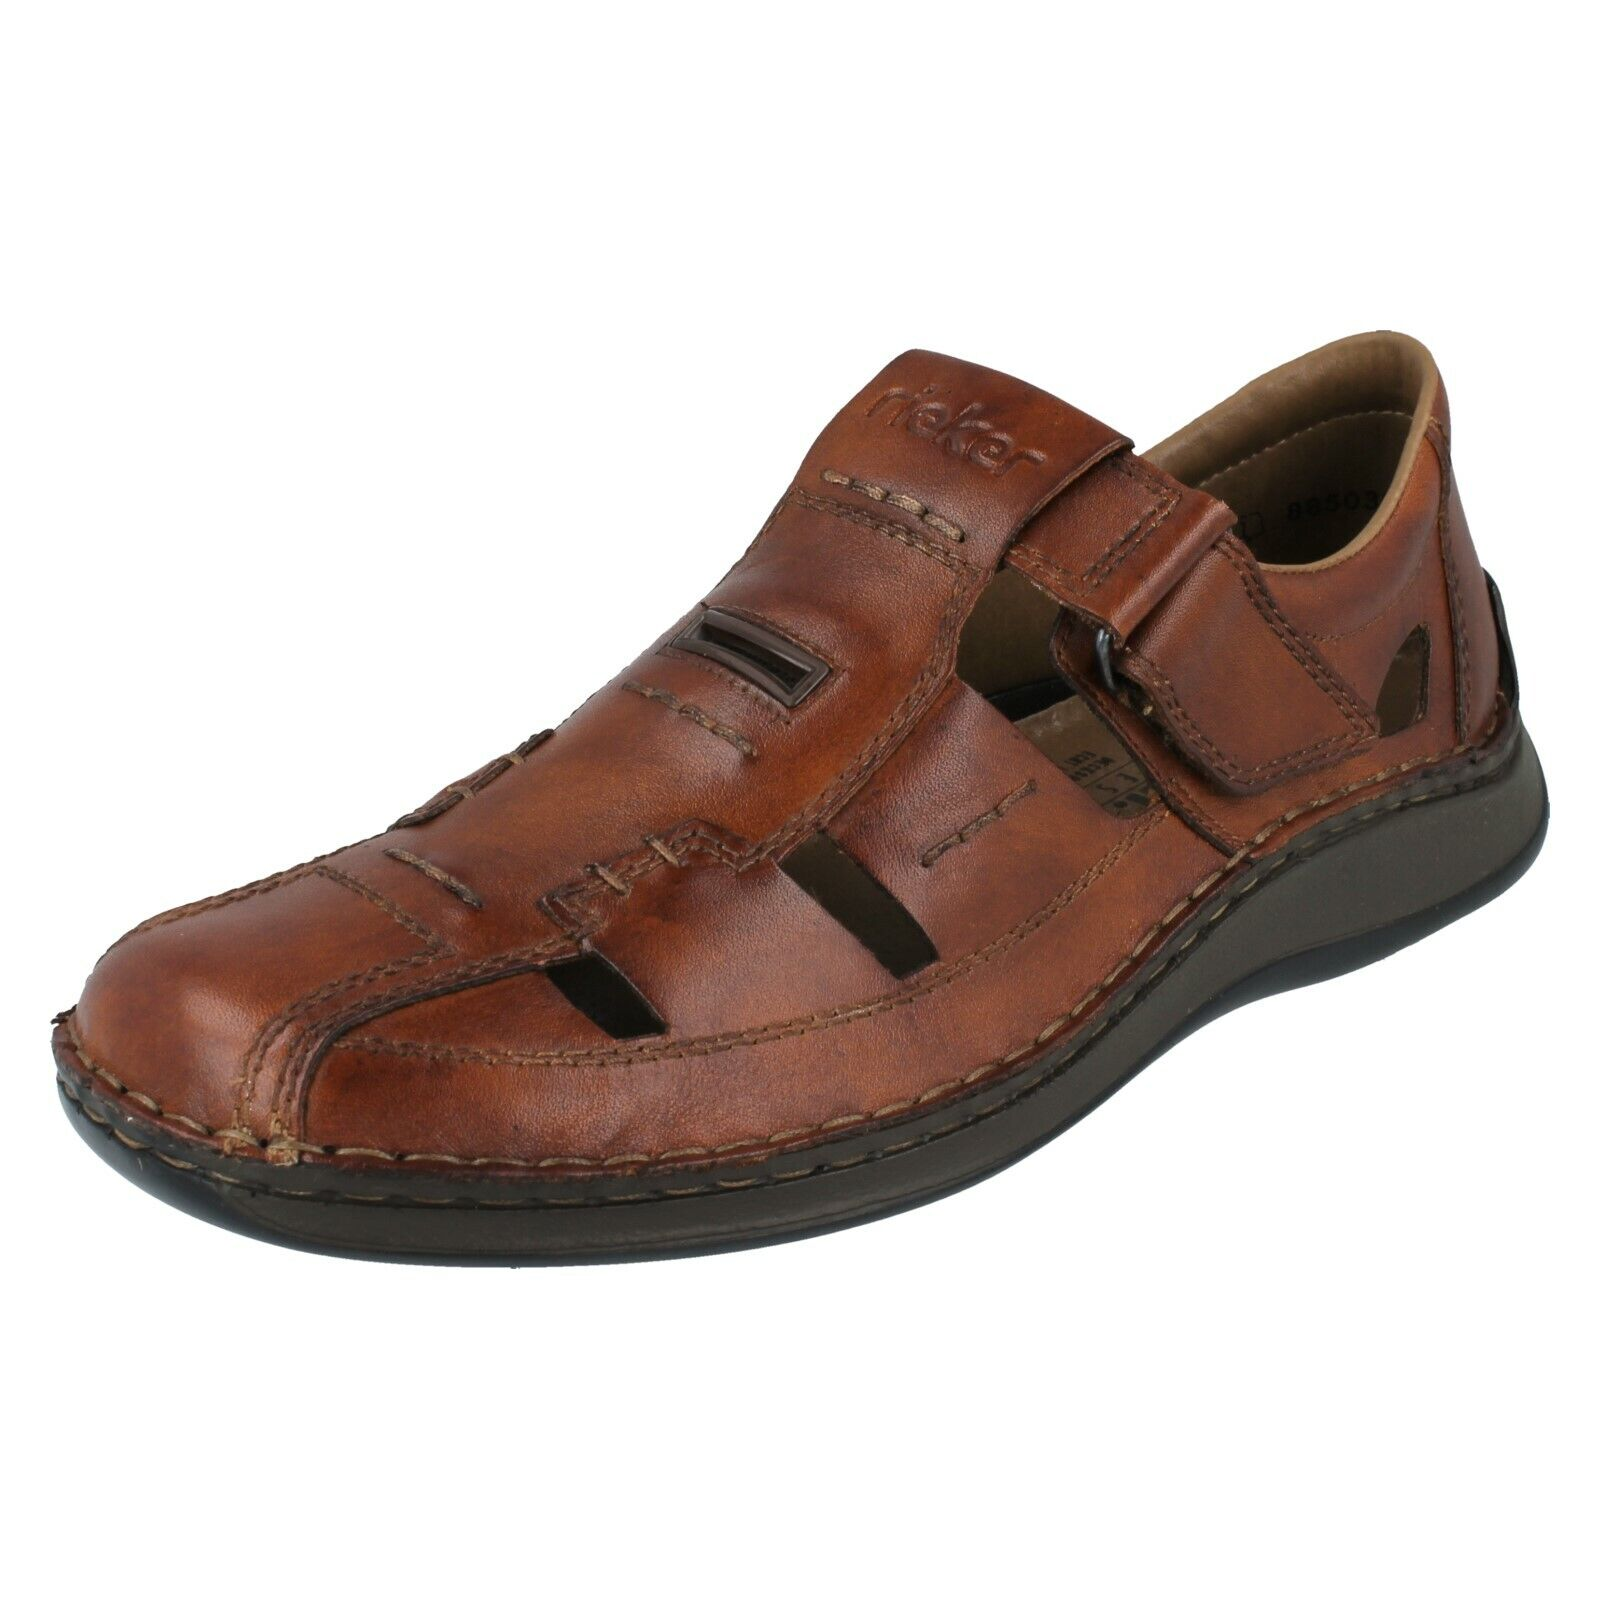 Mens Rieker shoes - 13560